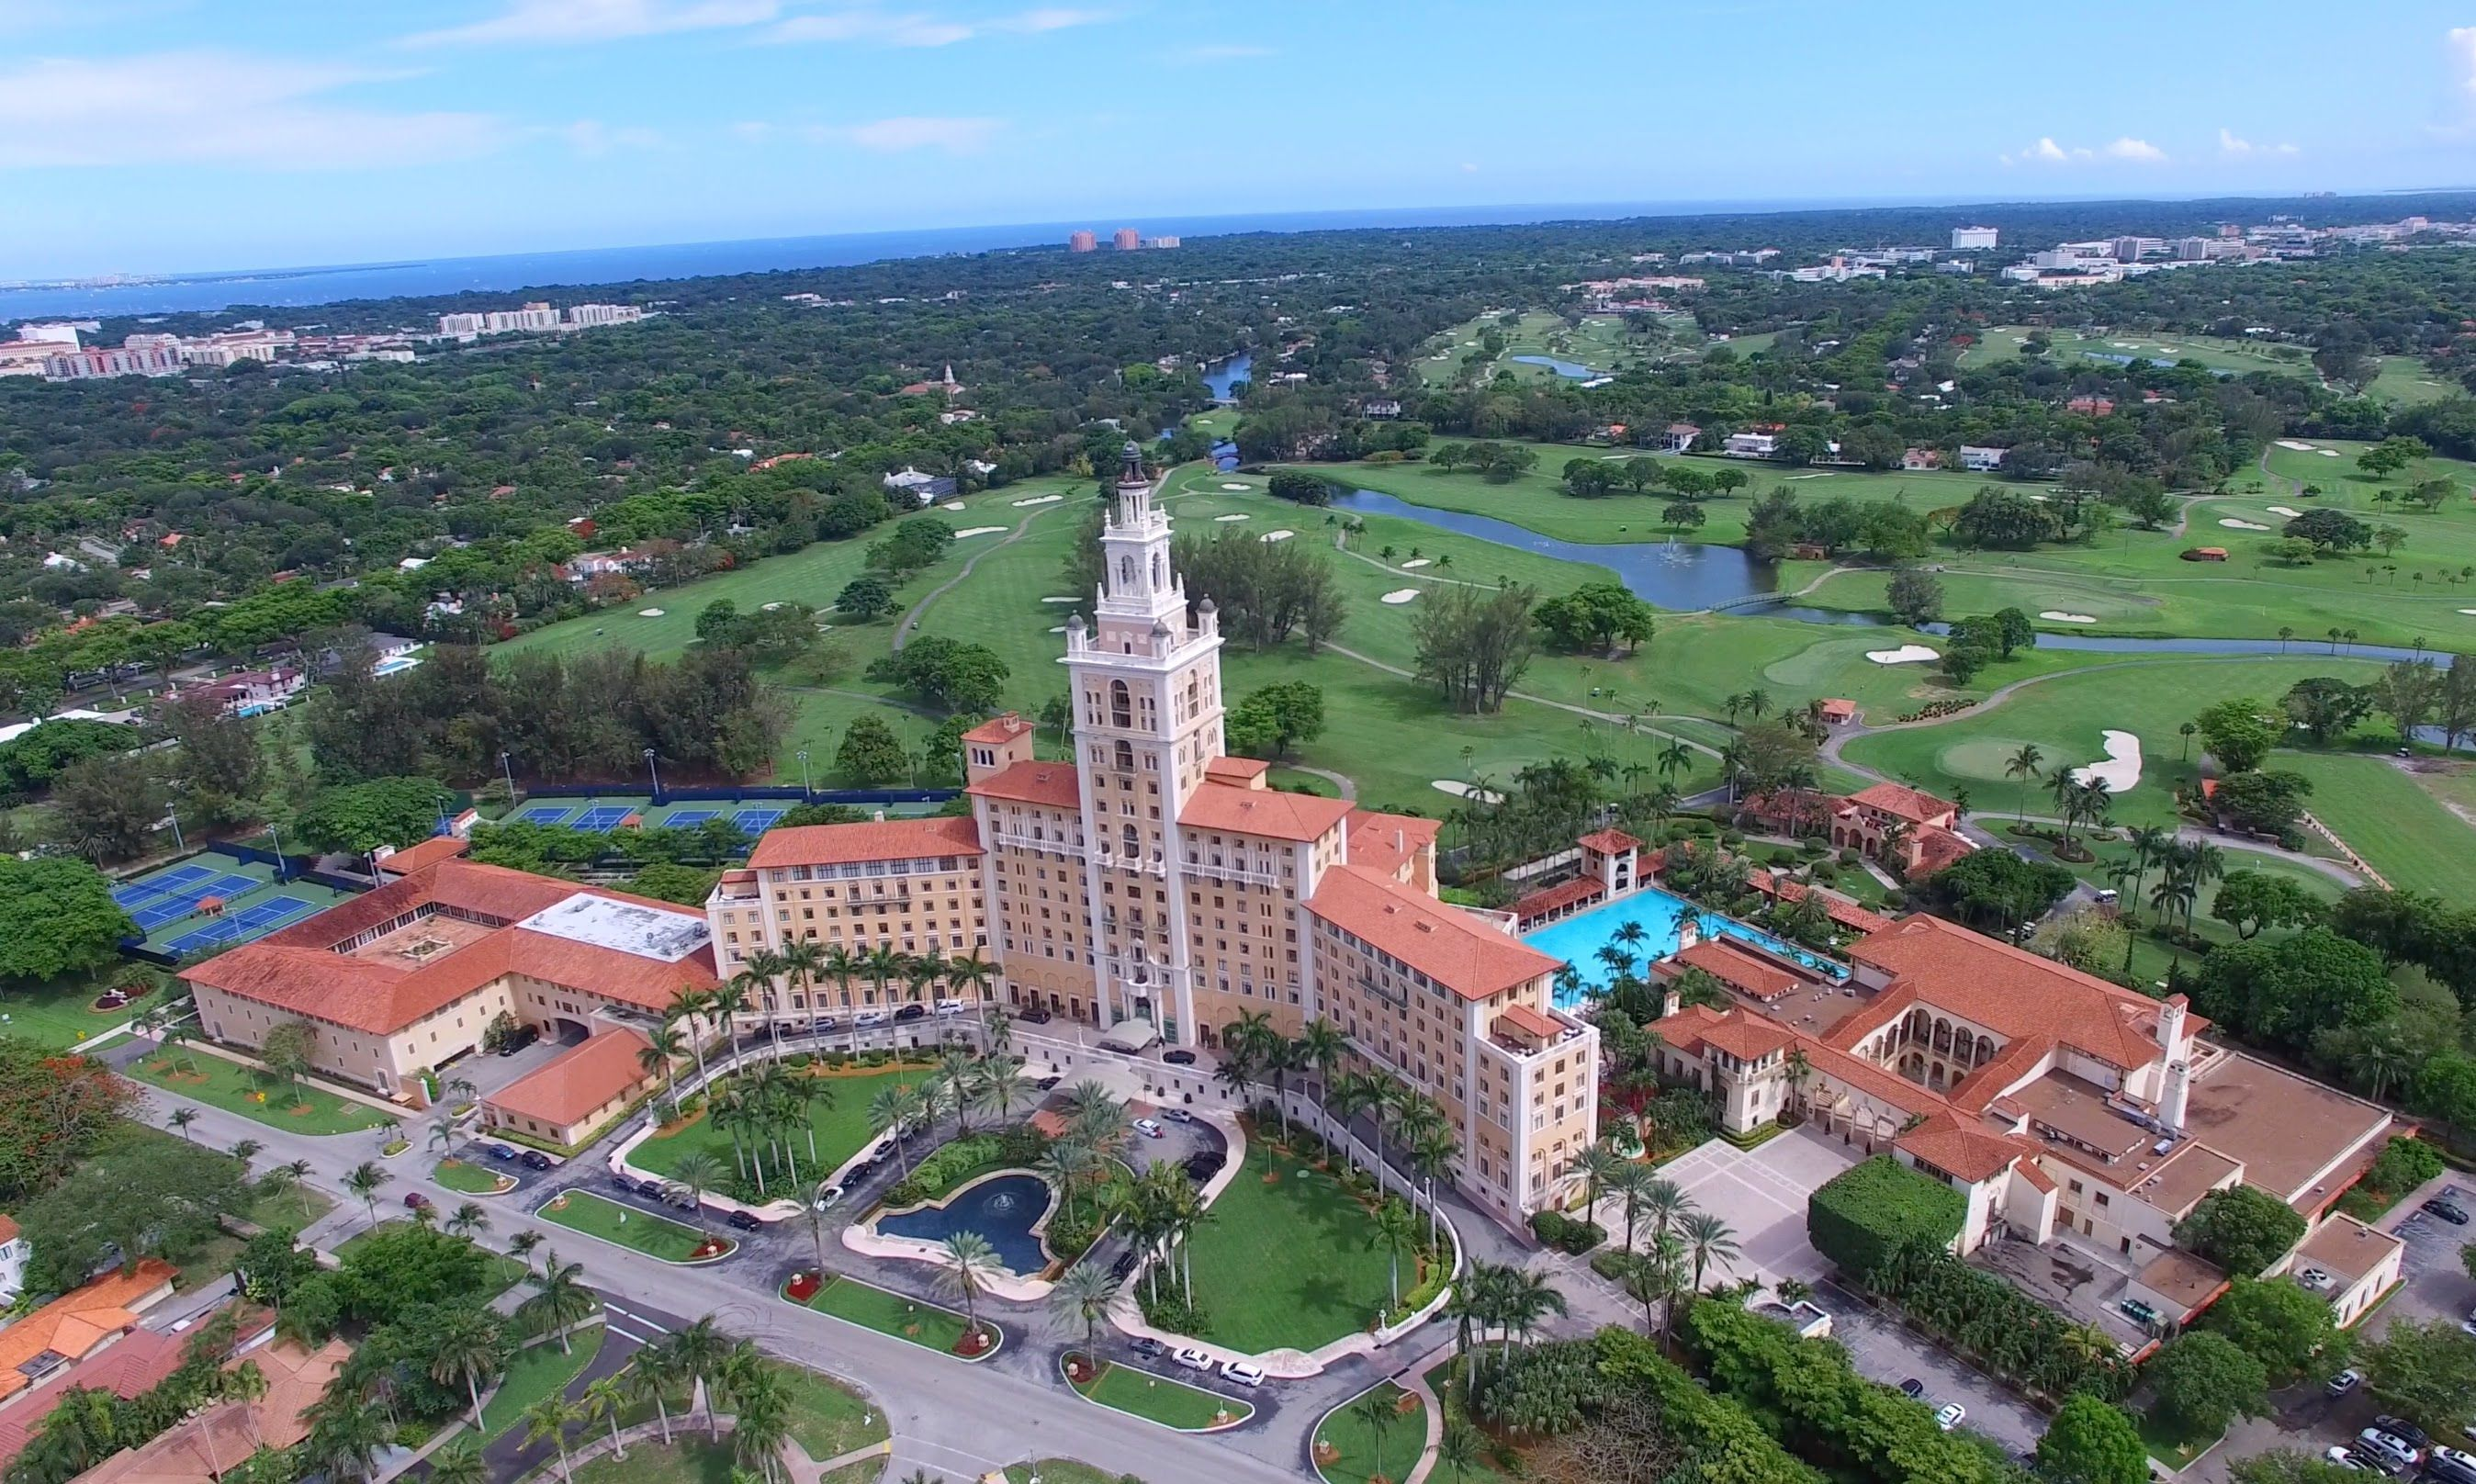 Biltmore Hotel Coral Gables Fl With Images Florida Hotels Coral Gables Biltmore